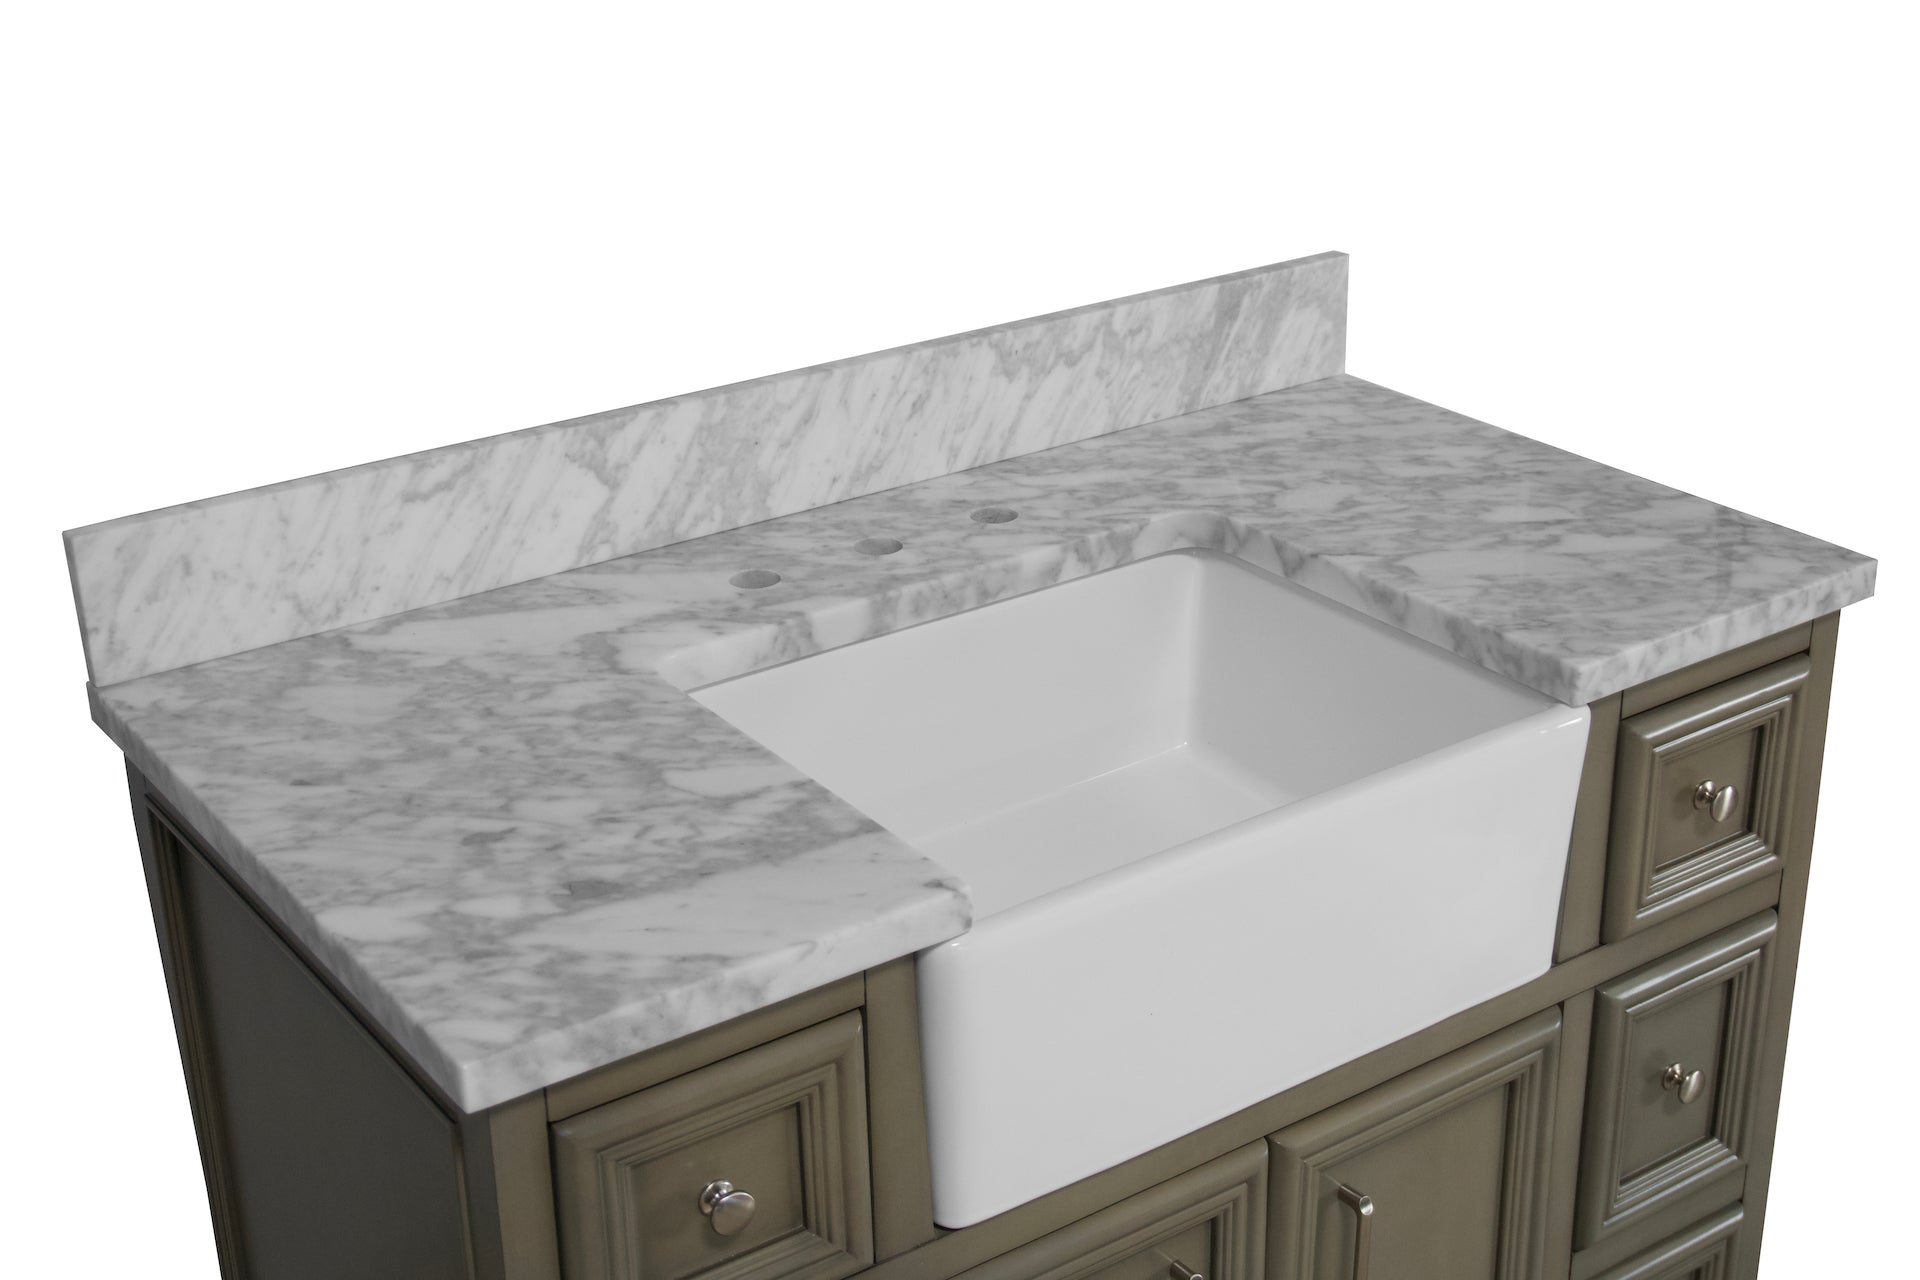 Zelda 42 Inch Farmhouse Bathroom Vanity Apron Sink Carrara Marble Kitchenbathcollection